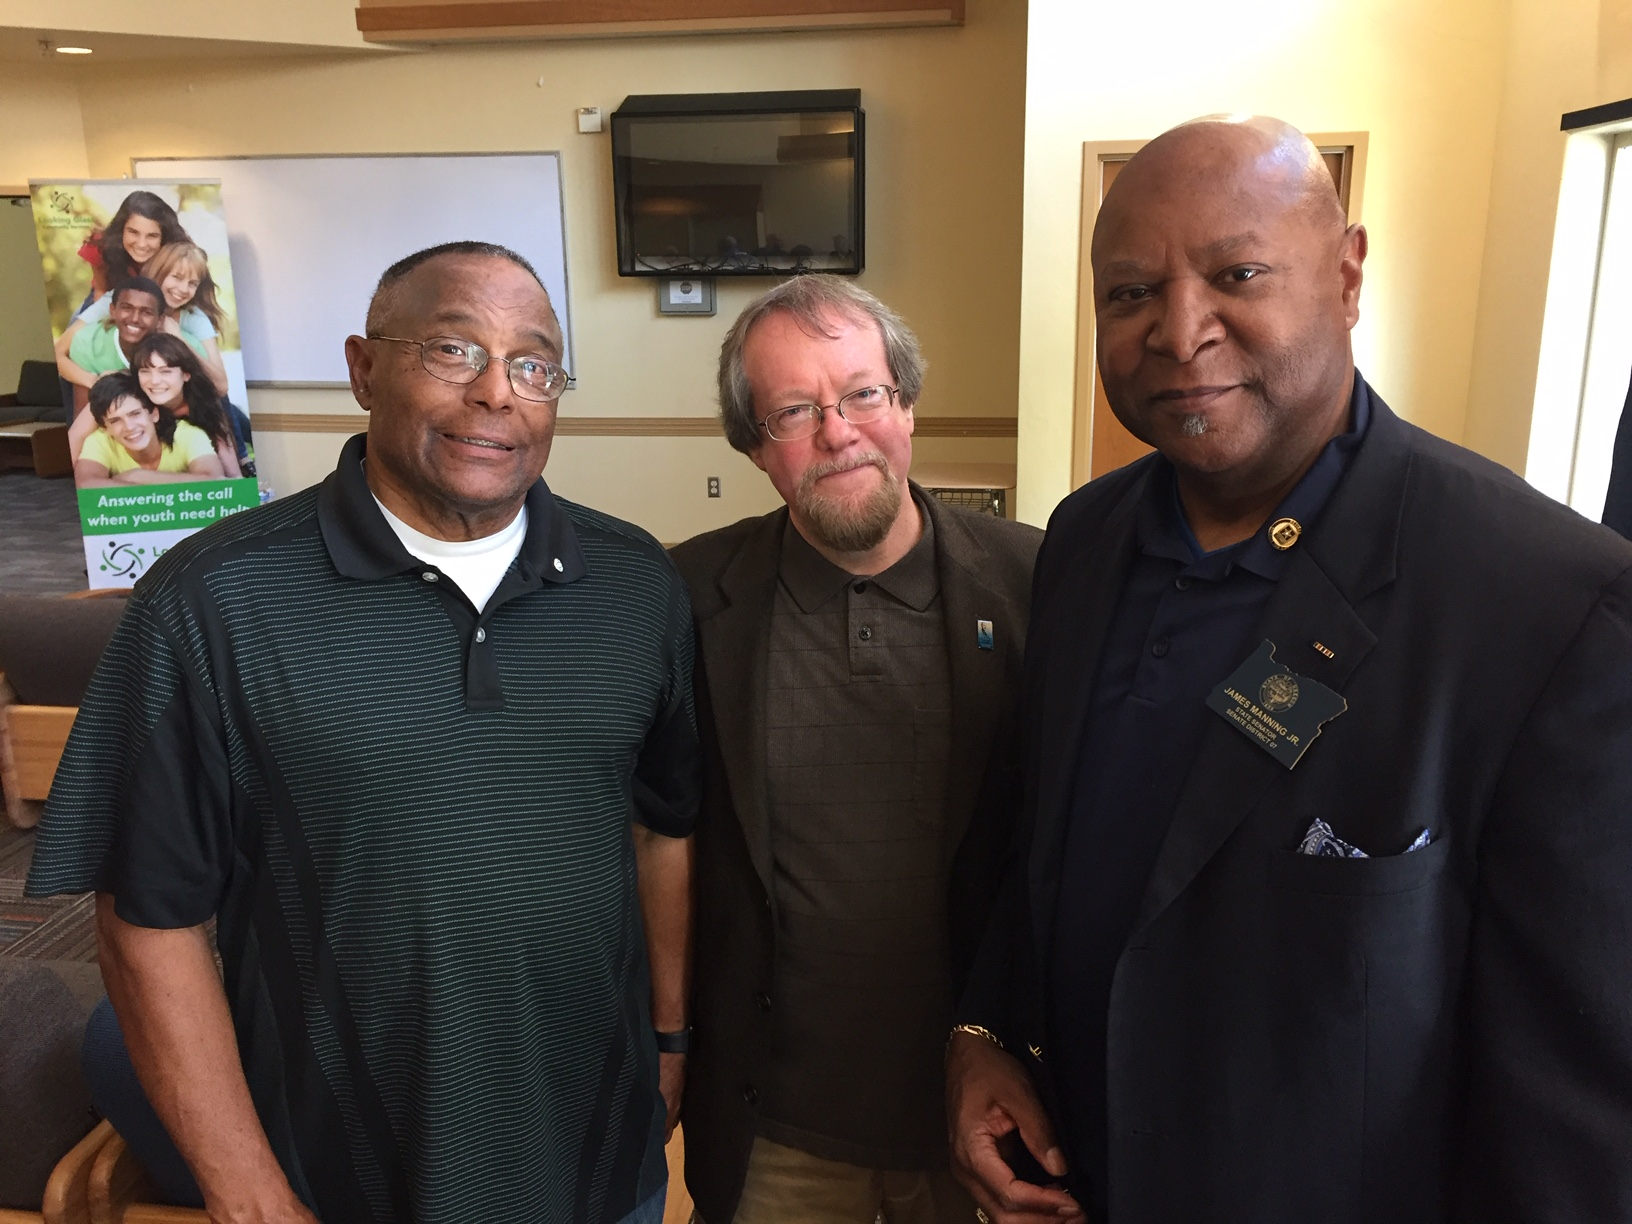 From left: George Russell, Looking Glass Board of Directors member, Craig Opperman, Oregon State Senator James Manning.